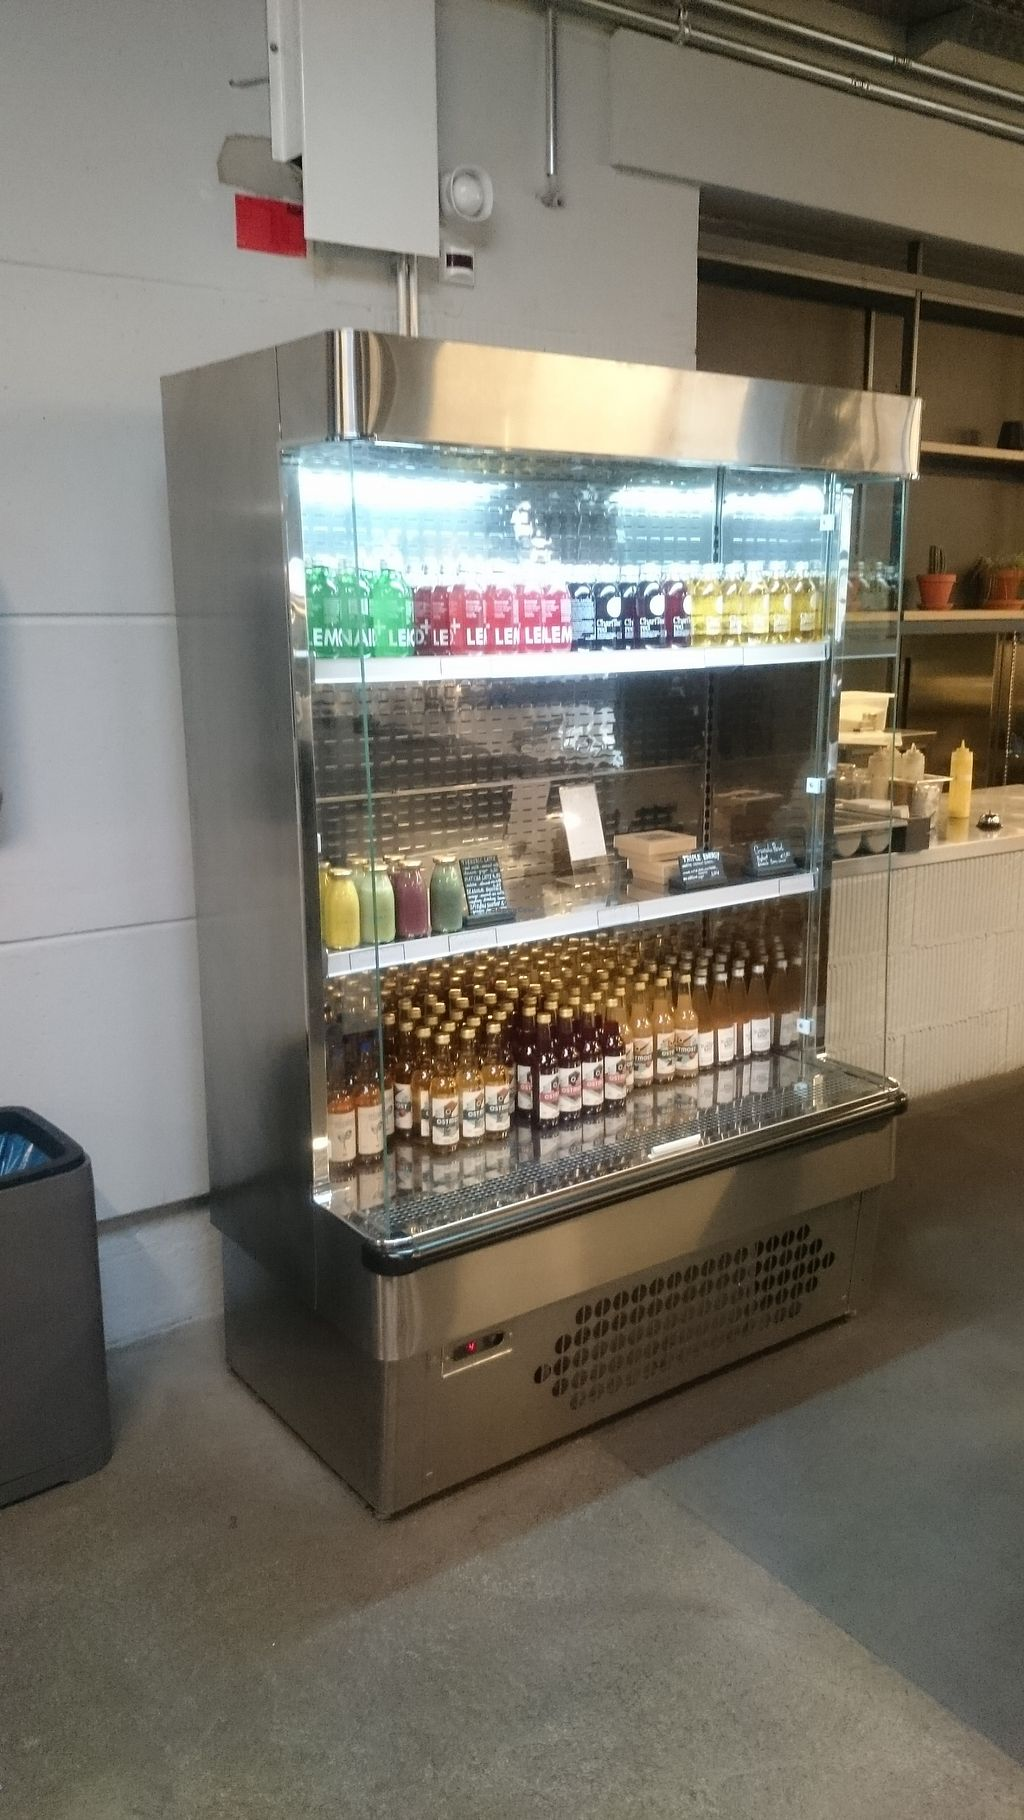 """Photo of LAB Kitchen  by <a href=""""/members/profile/chb-pbfp"""">chb-pbfp</a> <br/>Drinks <br/> April 3, 2018  - <a href='/contact/abuse/image/116539/380343'>Report</a>"""